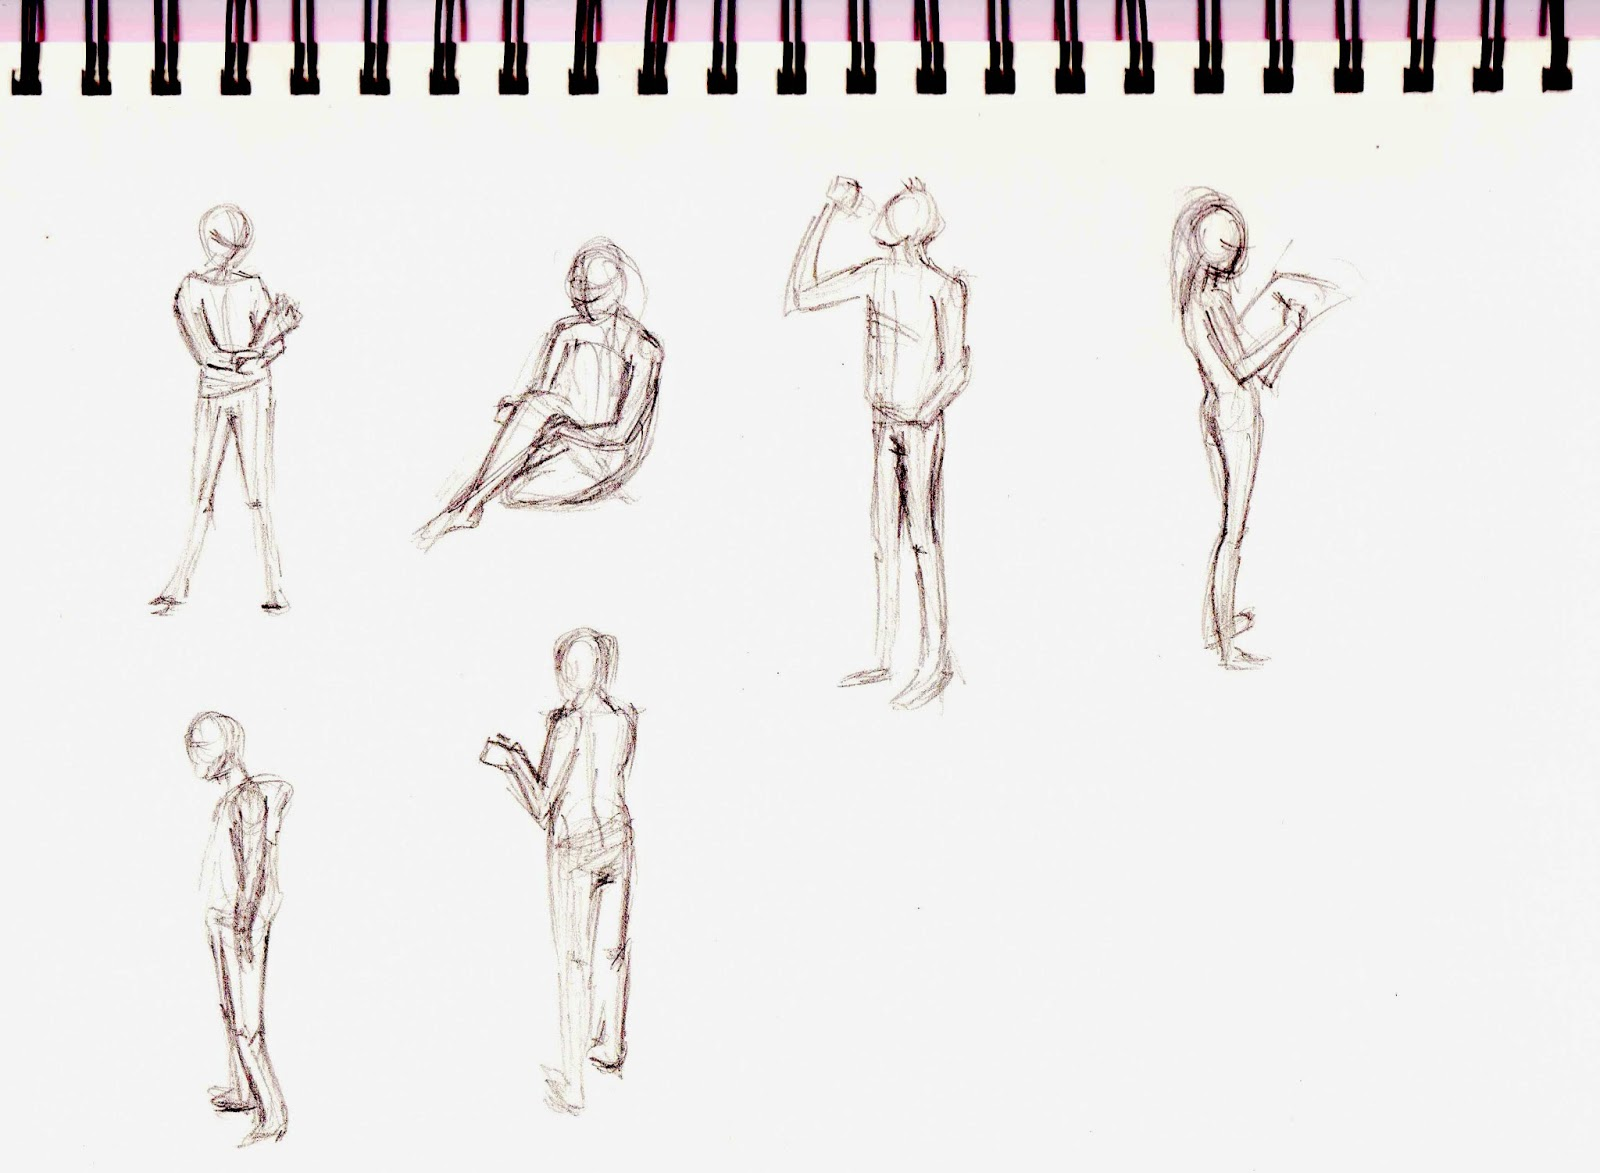 Charlotte Mosey Animation Anatomy And Poses Sketchbook Work